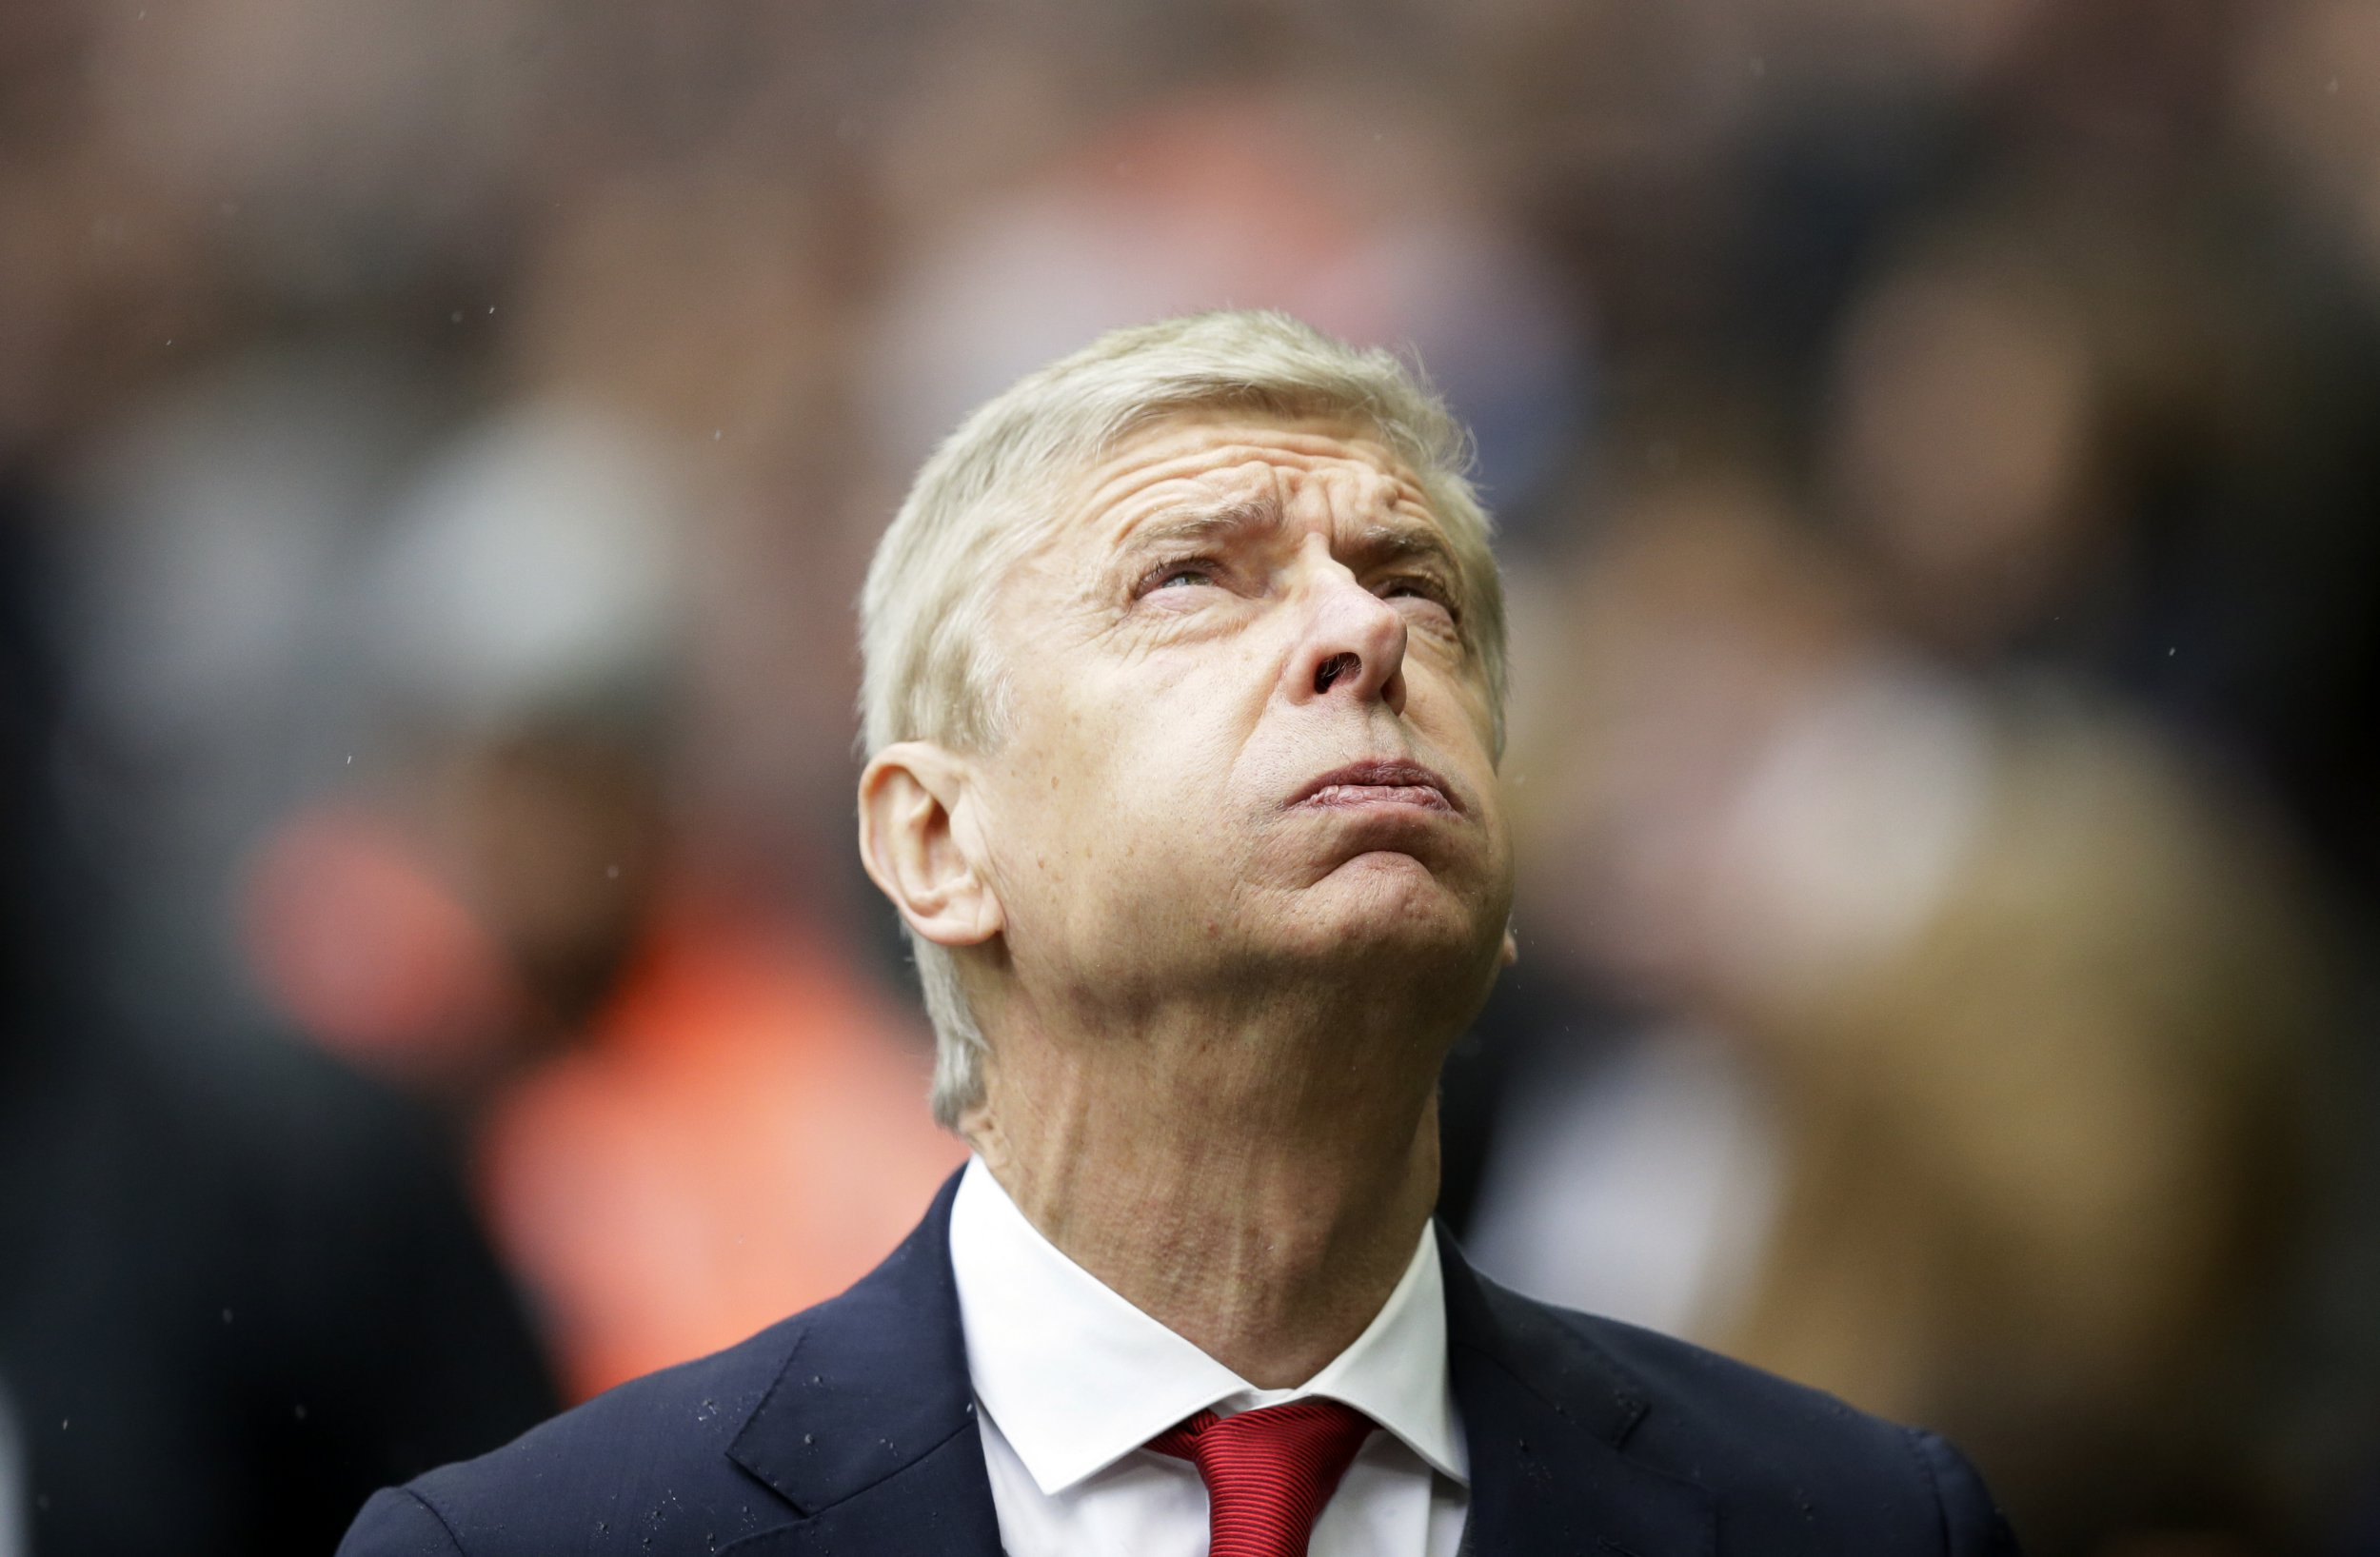 FILE - In this Saturday, Feb. 10, 2018 file photo, Arsenal's manager Arsene Wenger looks on before their English Premier League soccer match against Tottenham Hotspur at Wembley Stadium, London. Irked that his future is again under scrutiny, Arsenal manager Arsene Wenger reminded his critics he ???turned the whole world down??? to stay at the club and refused to comment on an end-of-season review regarding his position. (AP Photo/Tim Ireland, file)